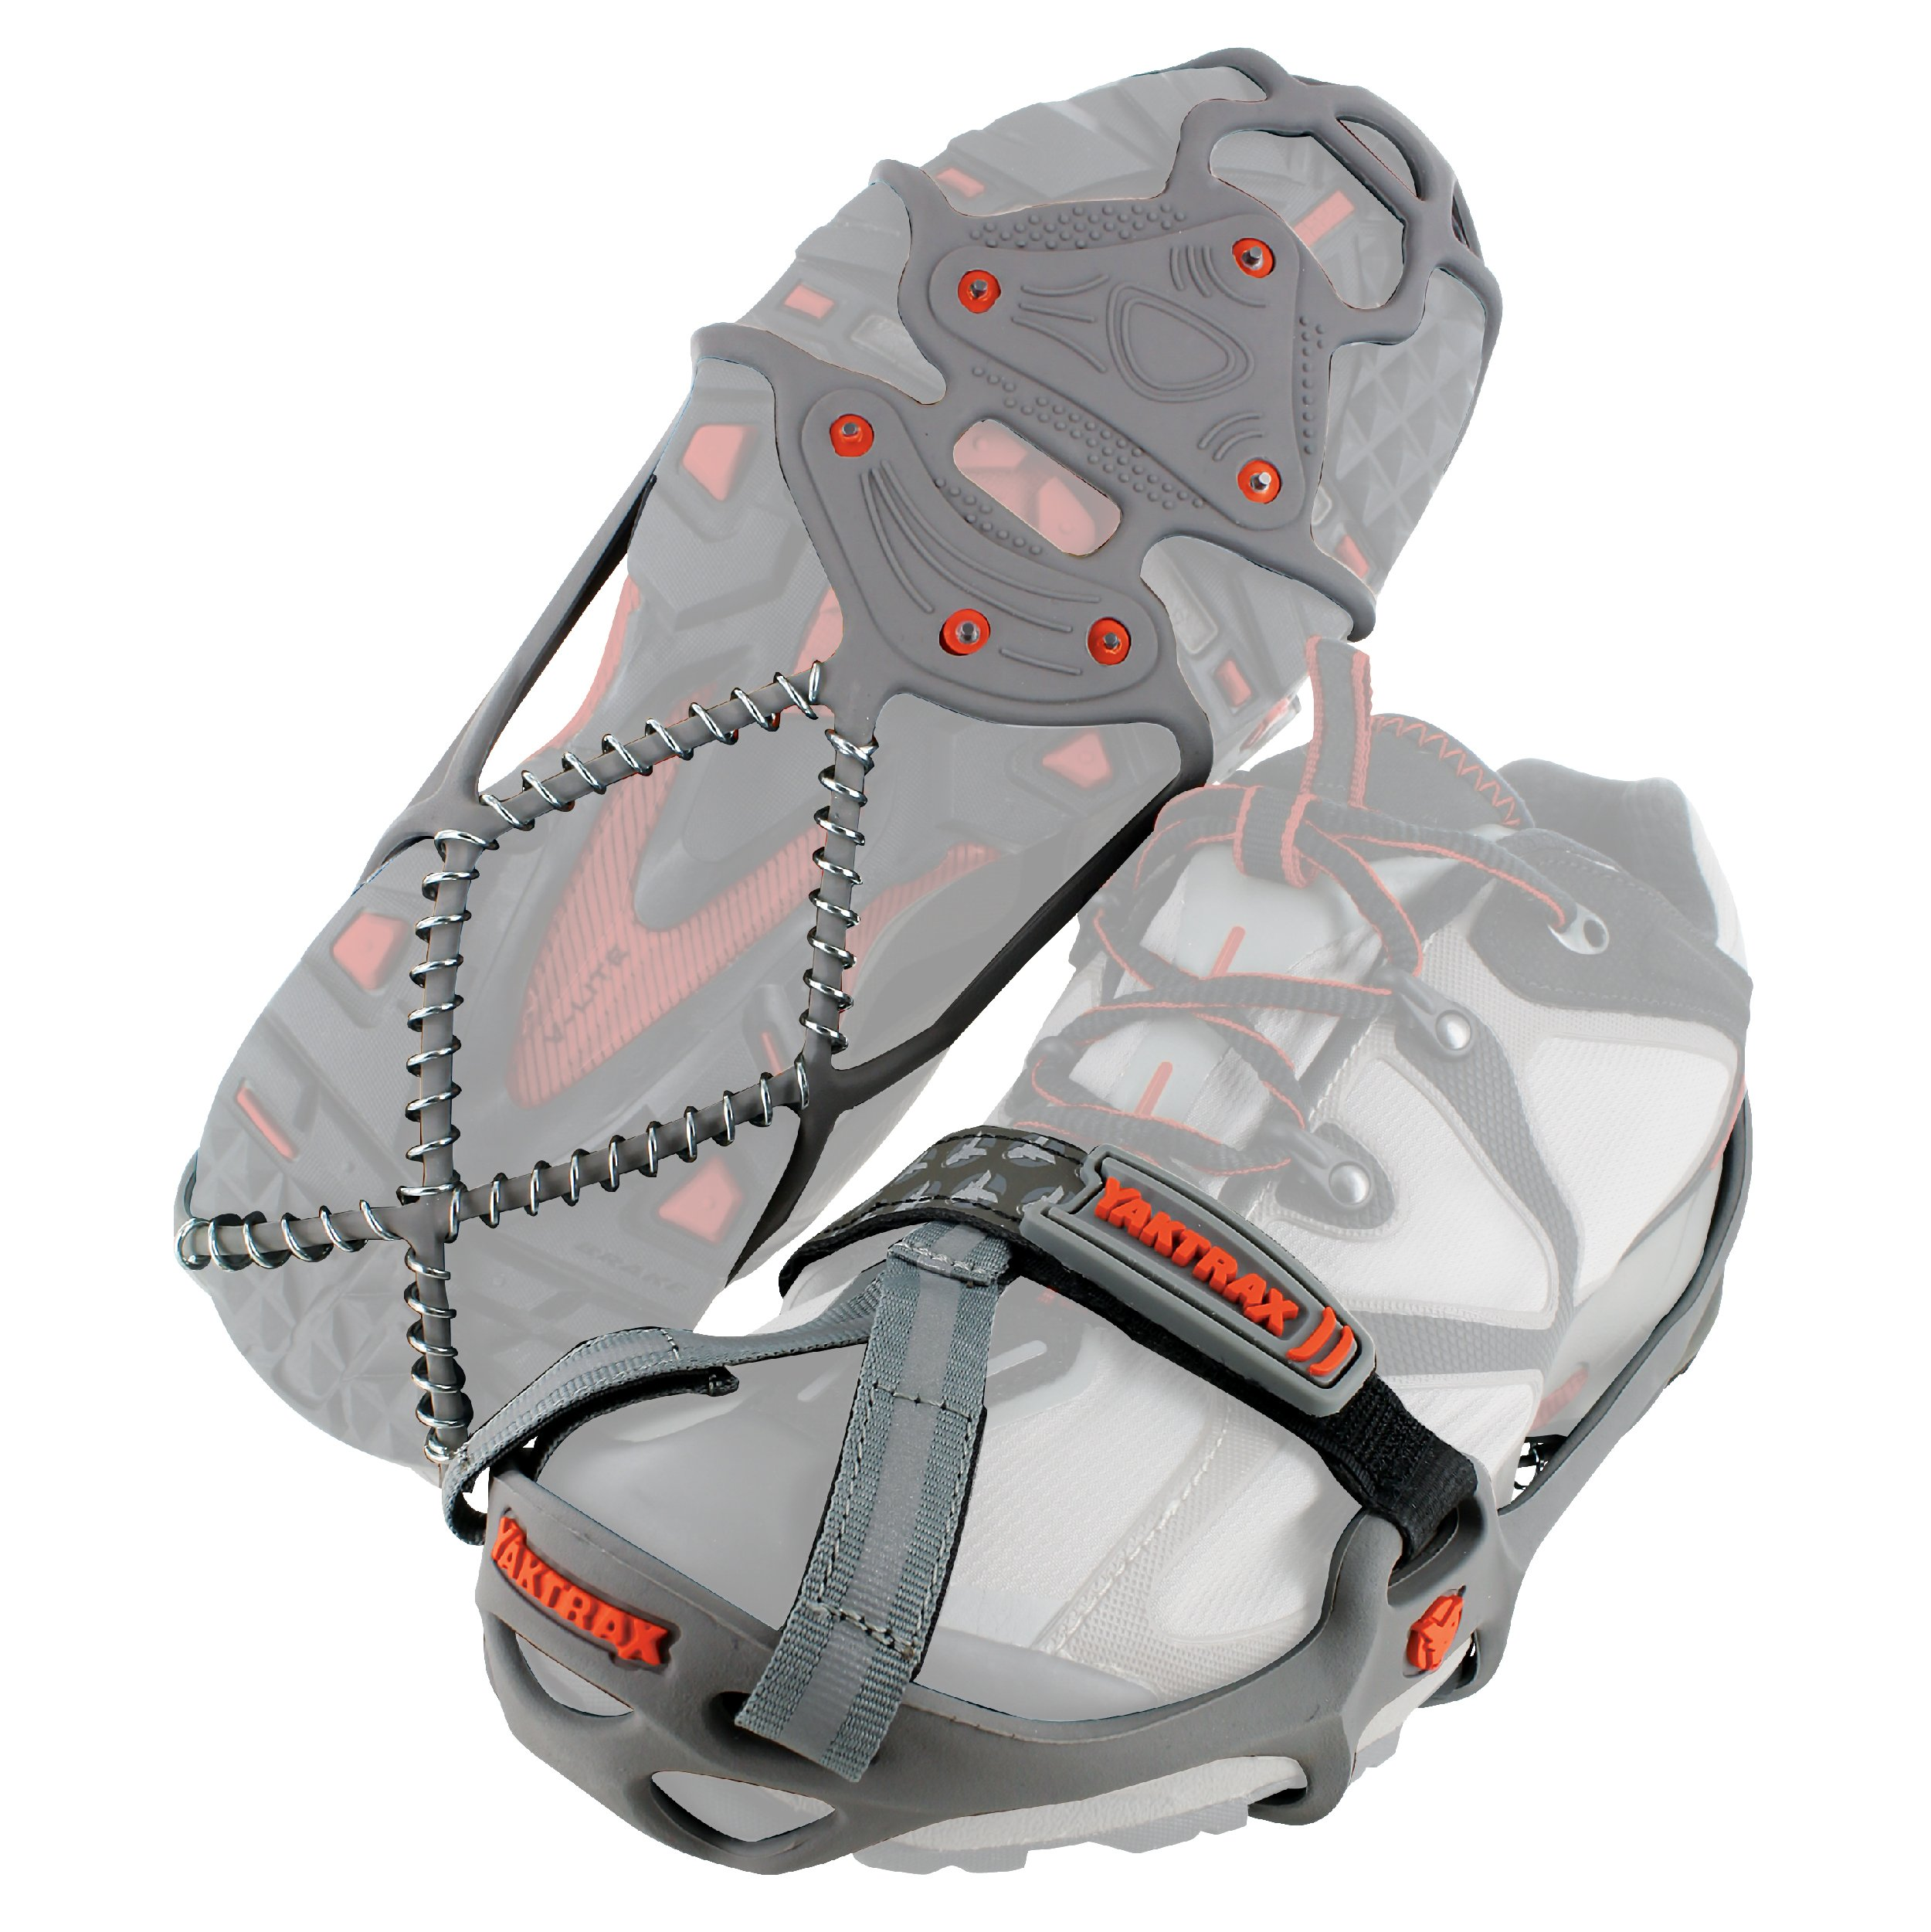 Yaktrax Run Traction Cleats for Running on Snow and Ice (1 Pair), Small by Yaktrax